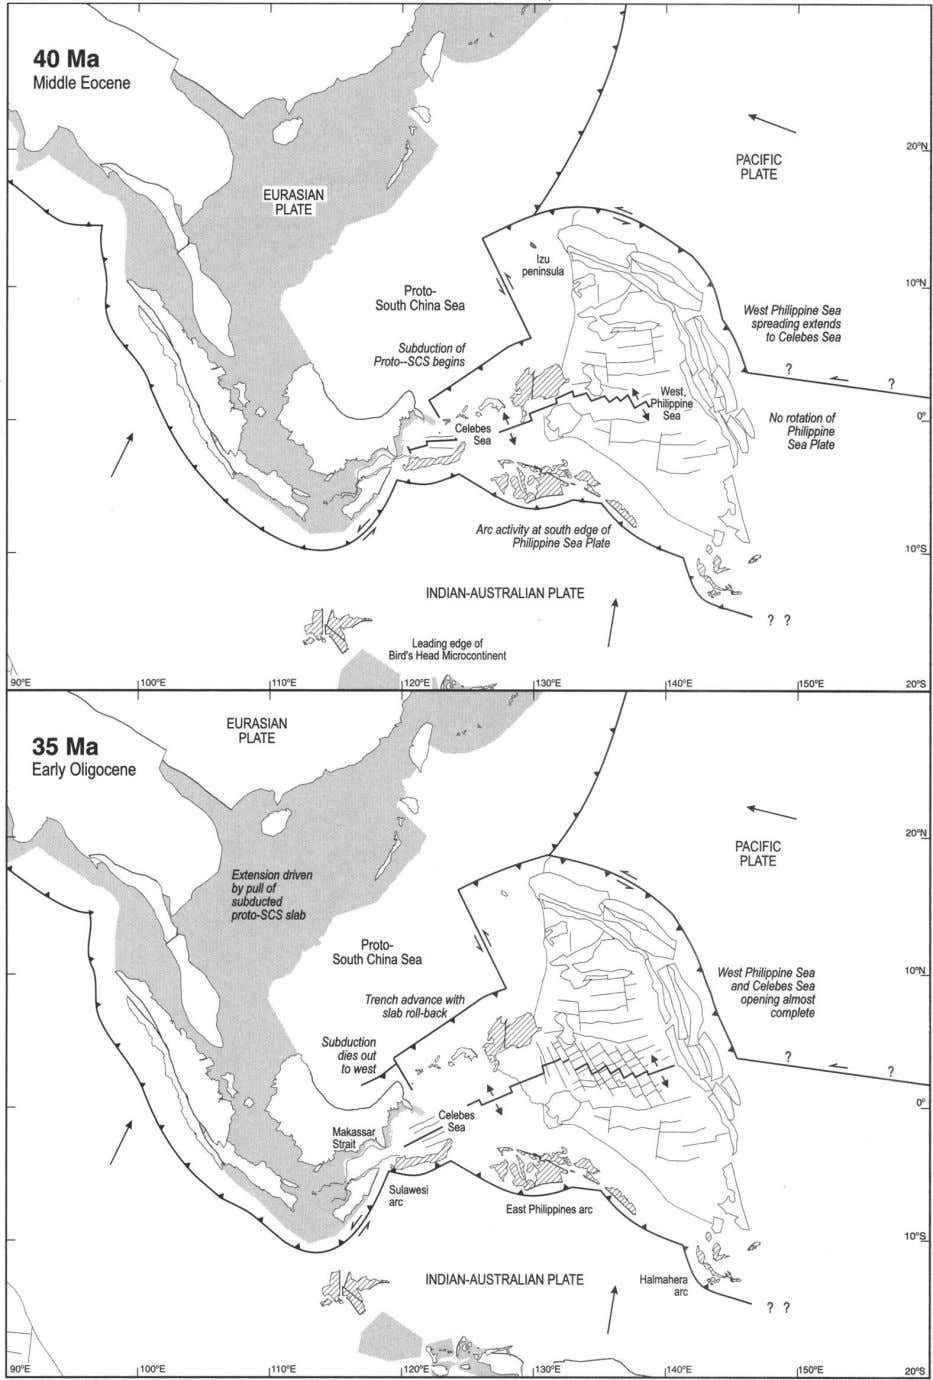 Fig. 3. Reconstructions of the region at 40 and 35 Ma. The Philippine Sea plate